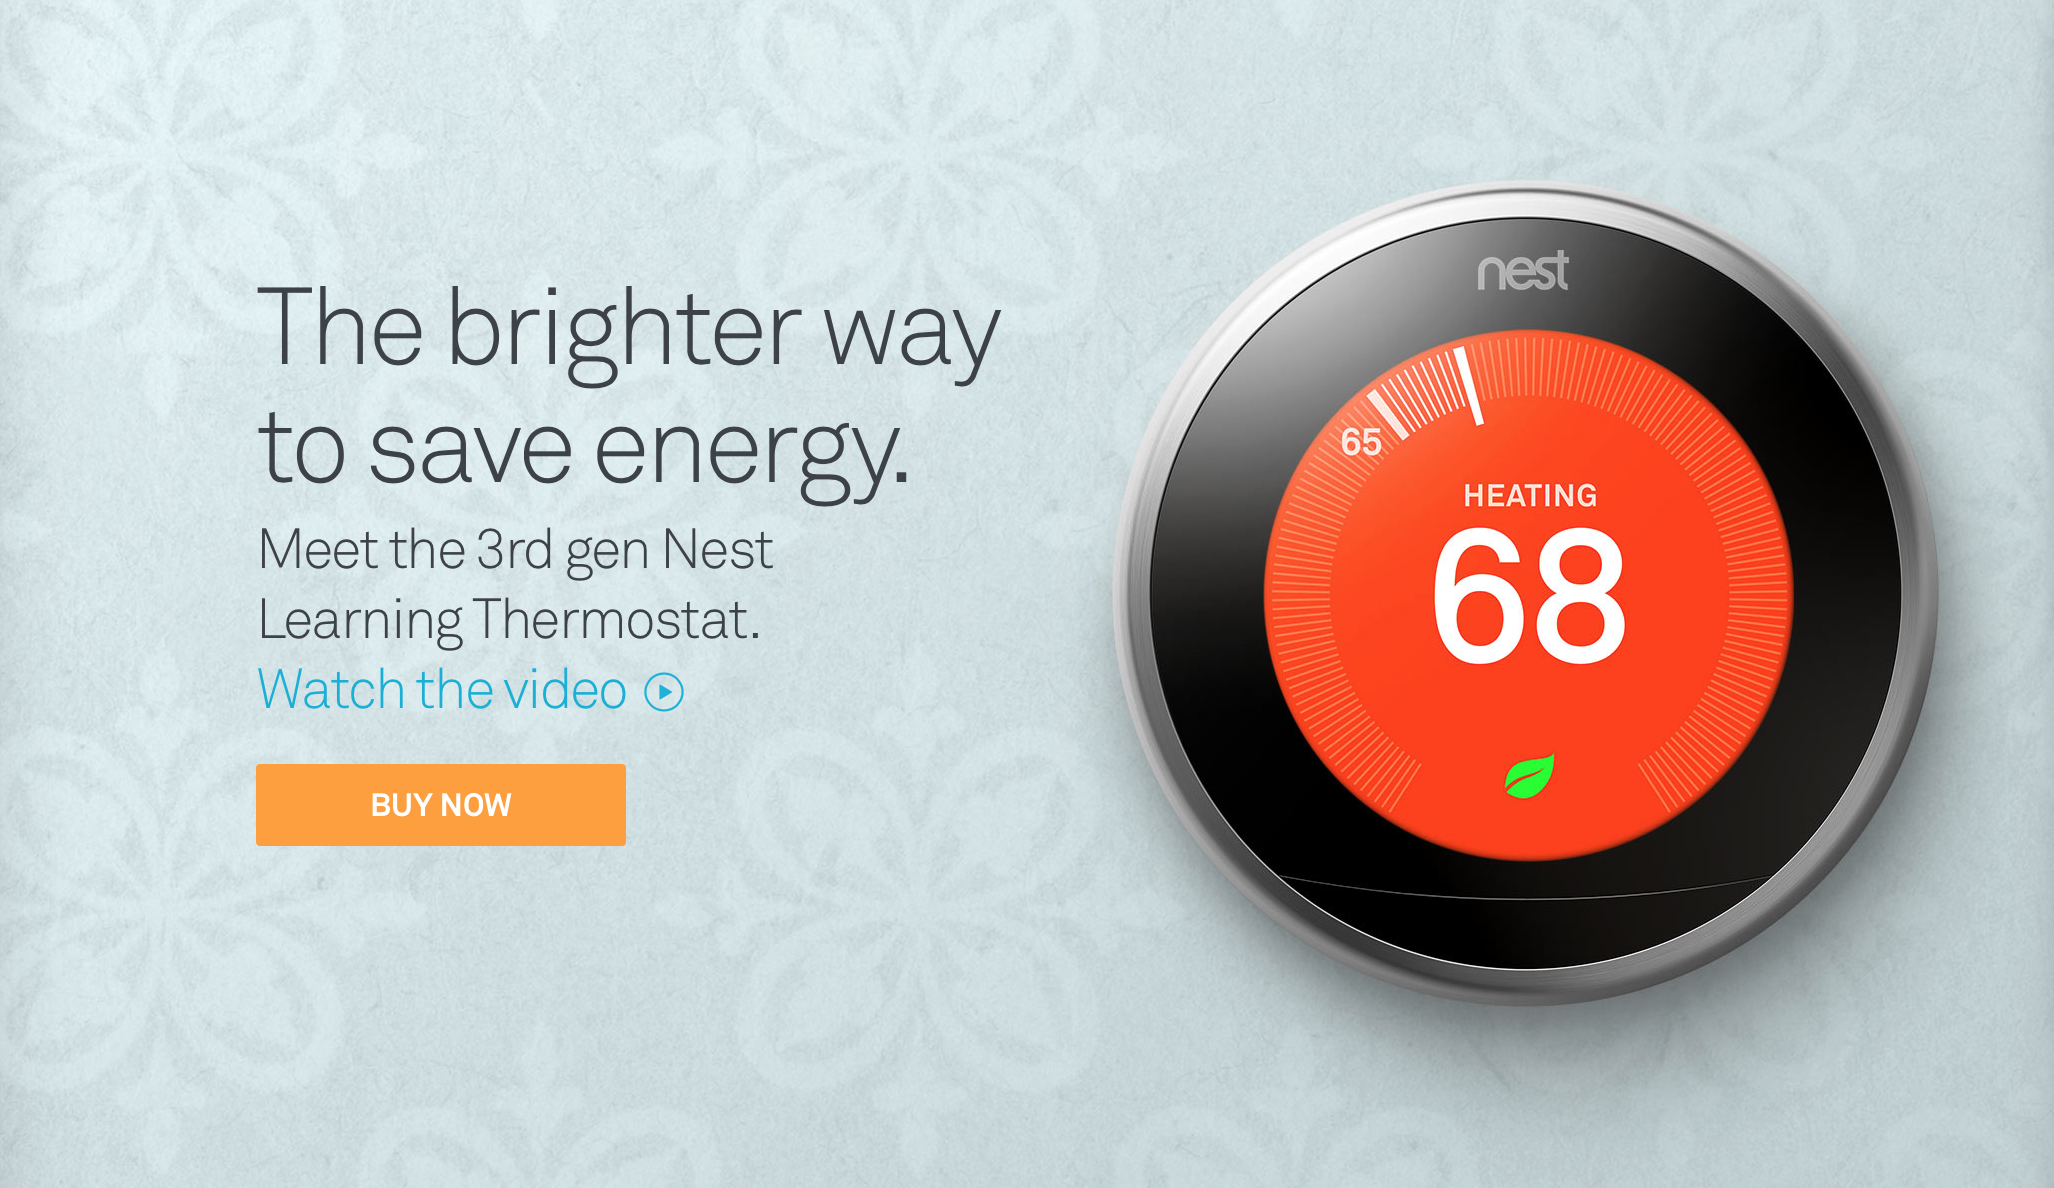 Meet Google's slimmer, sleeker third-gen Nest thermostat